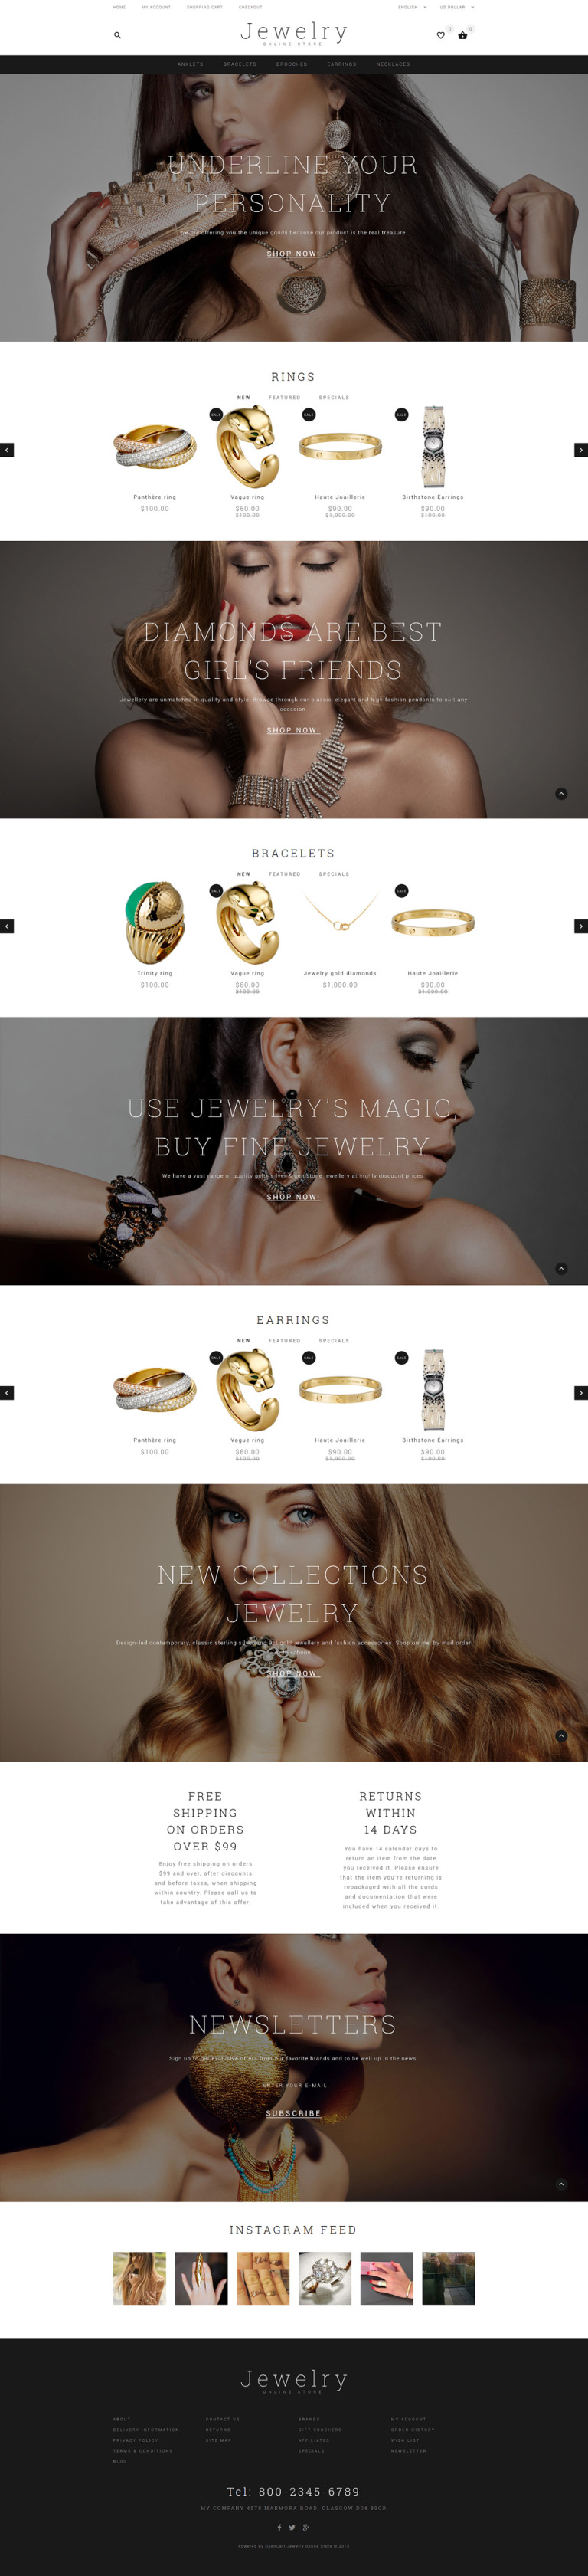 Jewelry Showcase OpenCart Template New Screenshots BIG